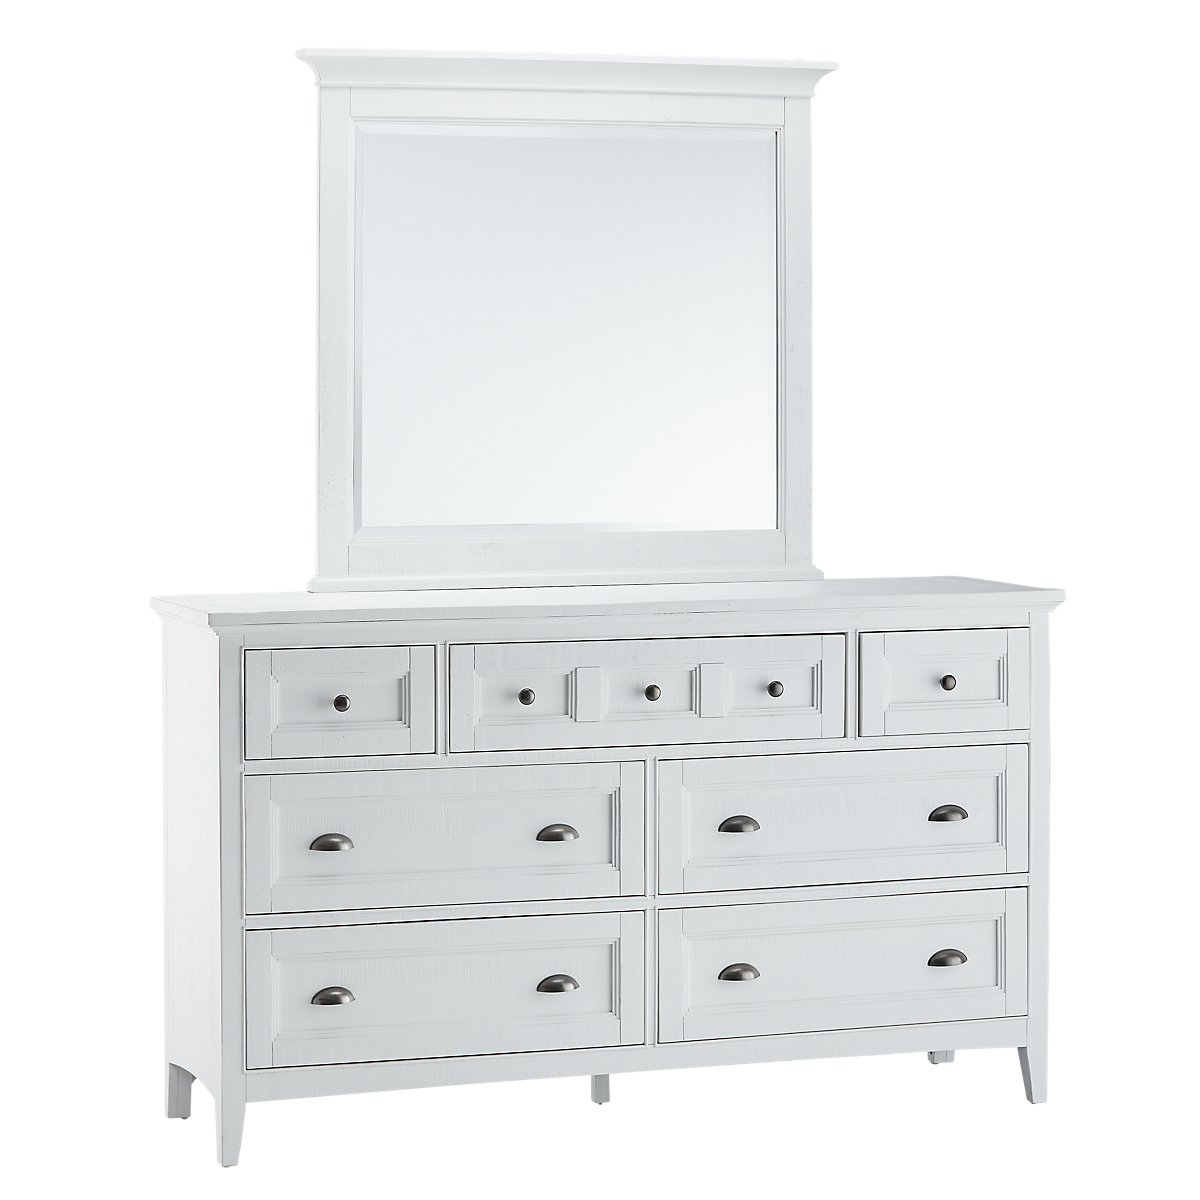 Heron Cove White Dresser Mirror